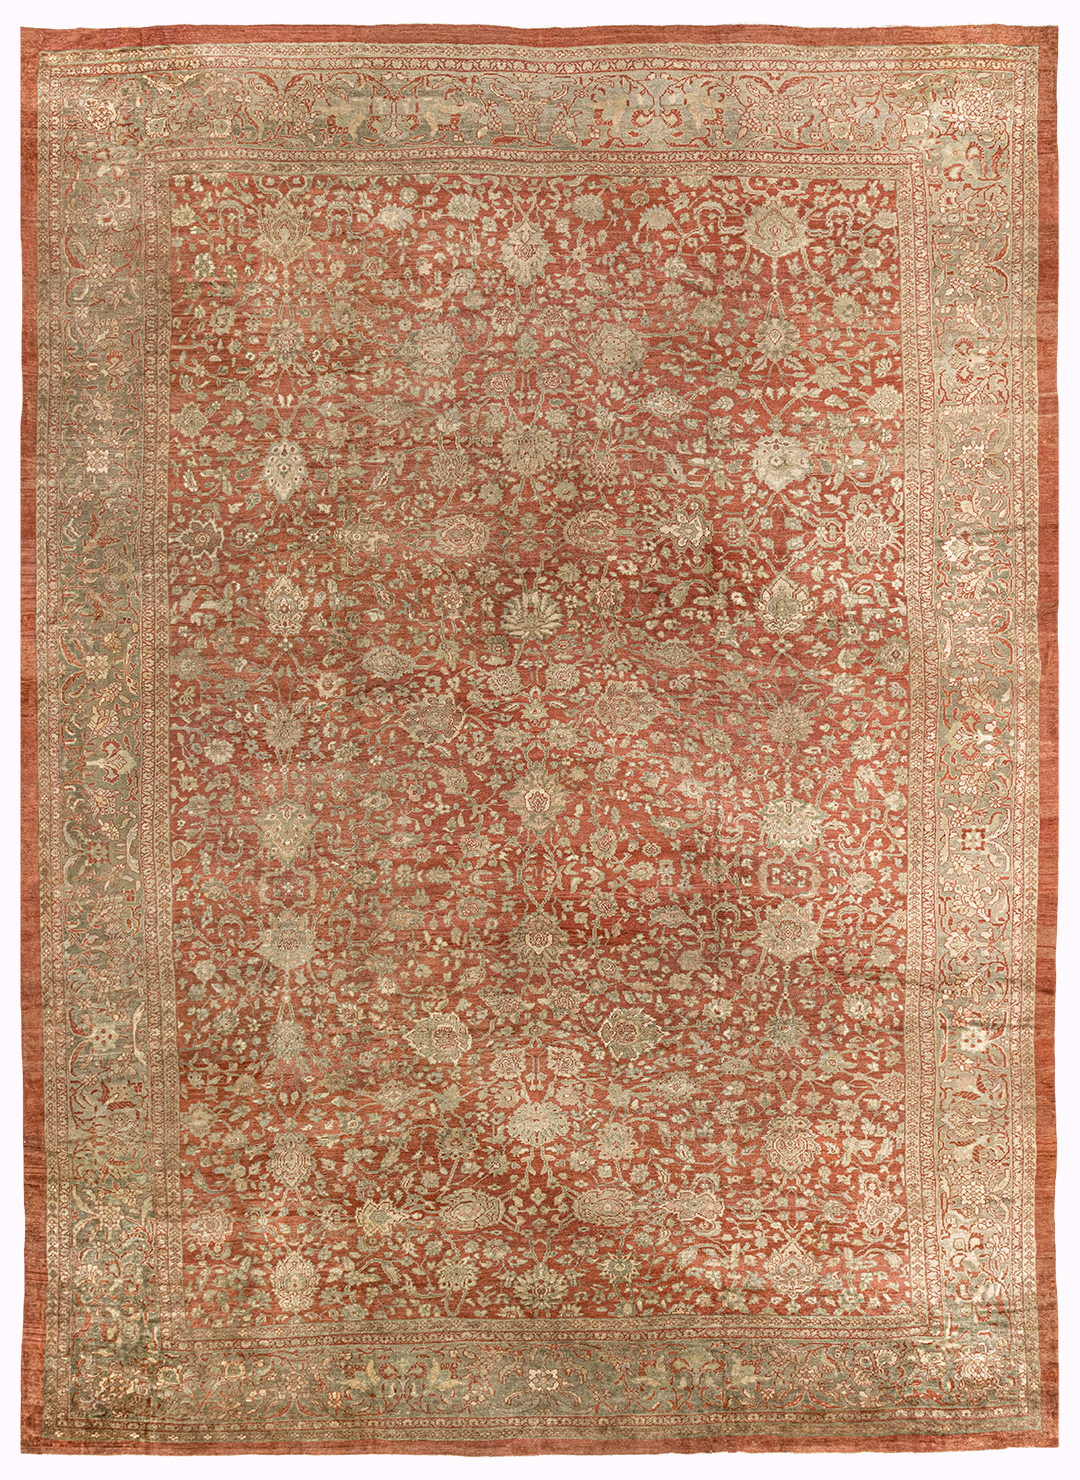 Oversize Antique Persian Sultanabad Rug